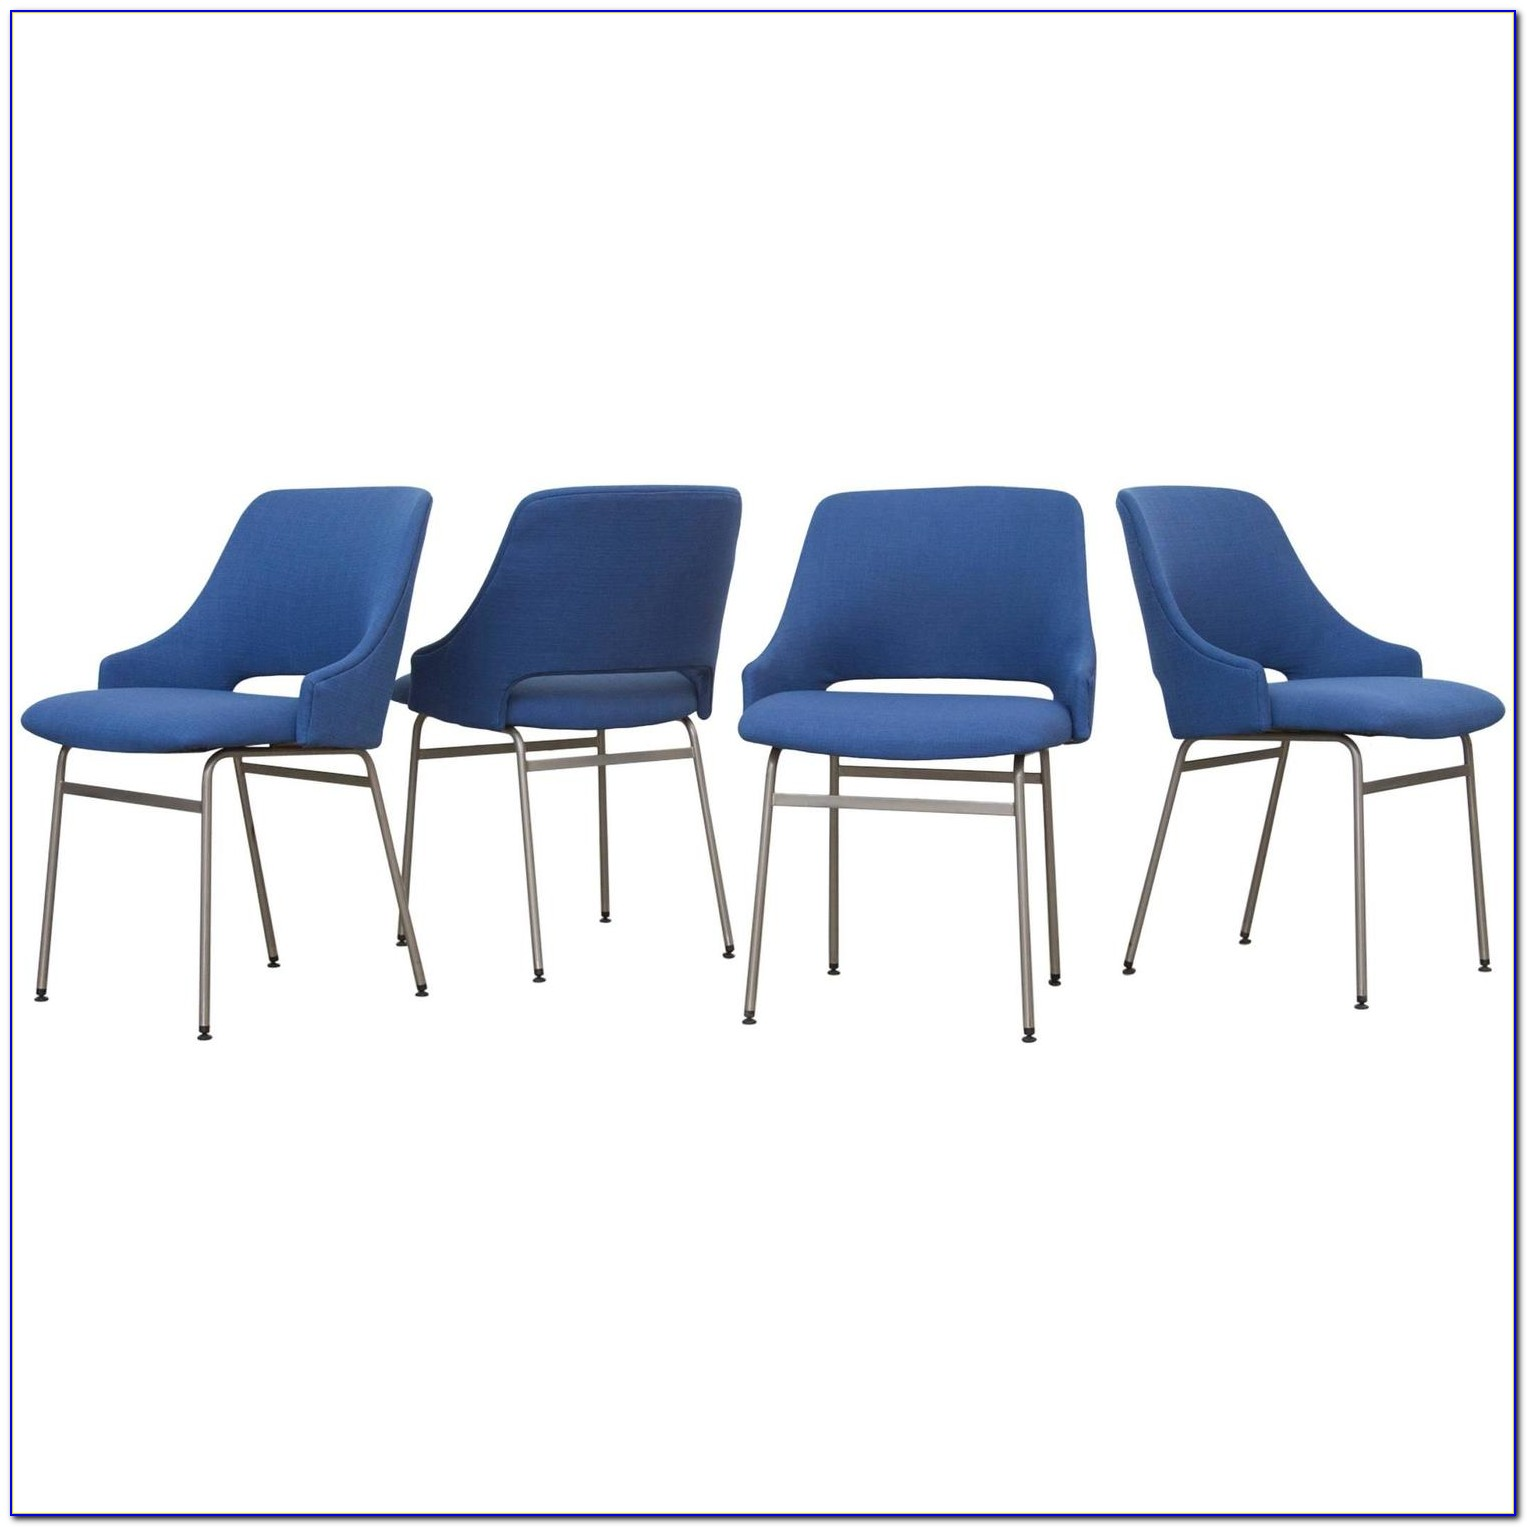 Royal Blue Upholstered Dining Chairs